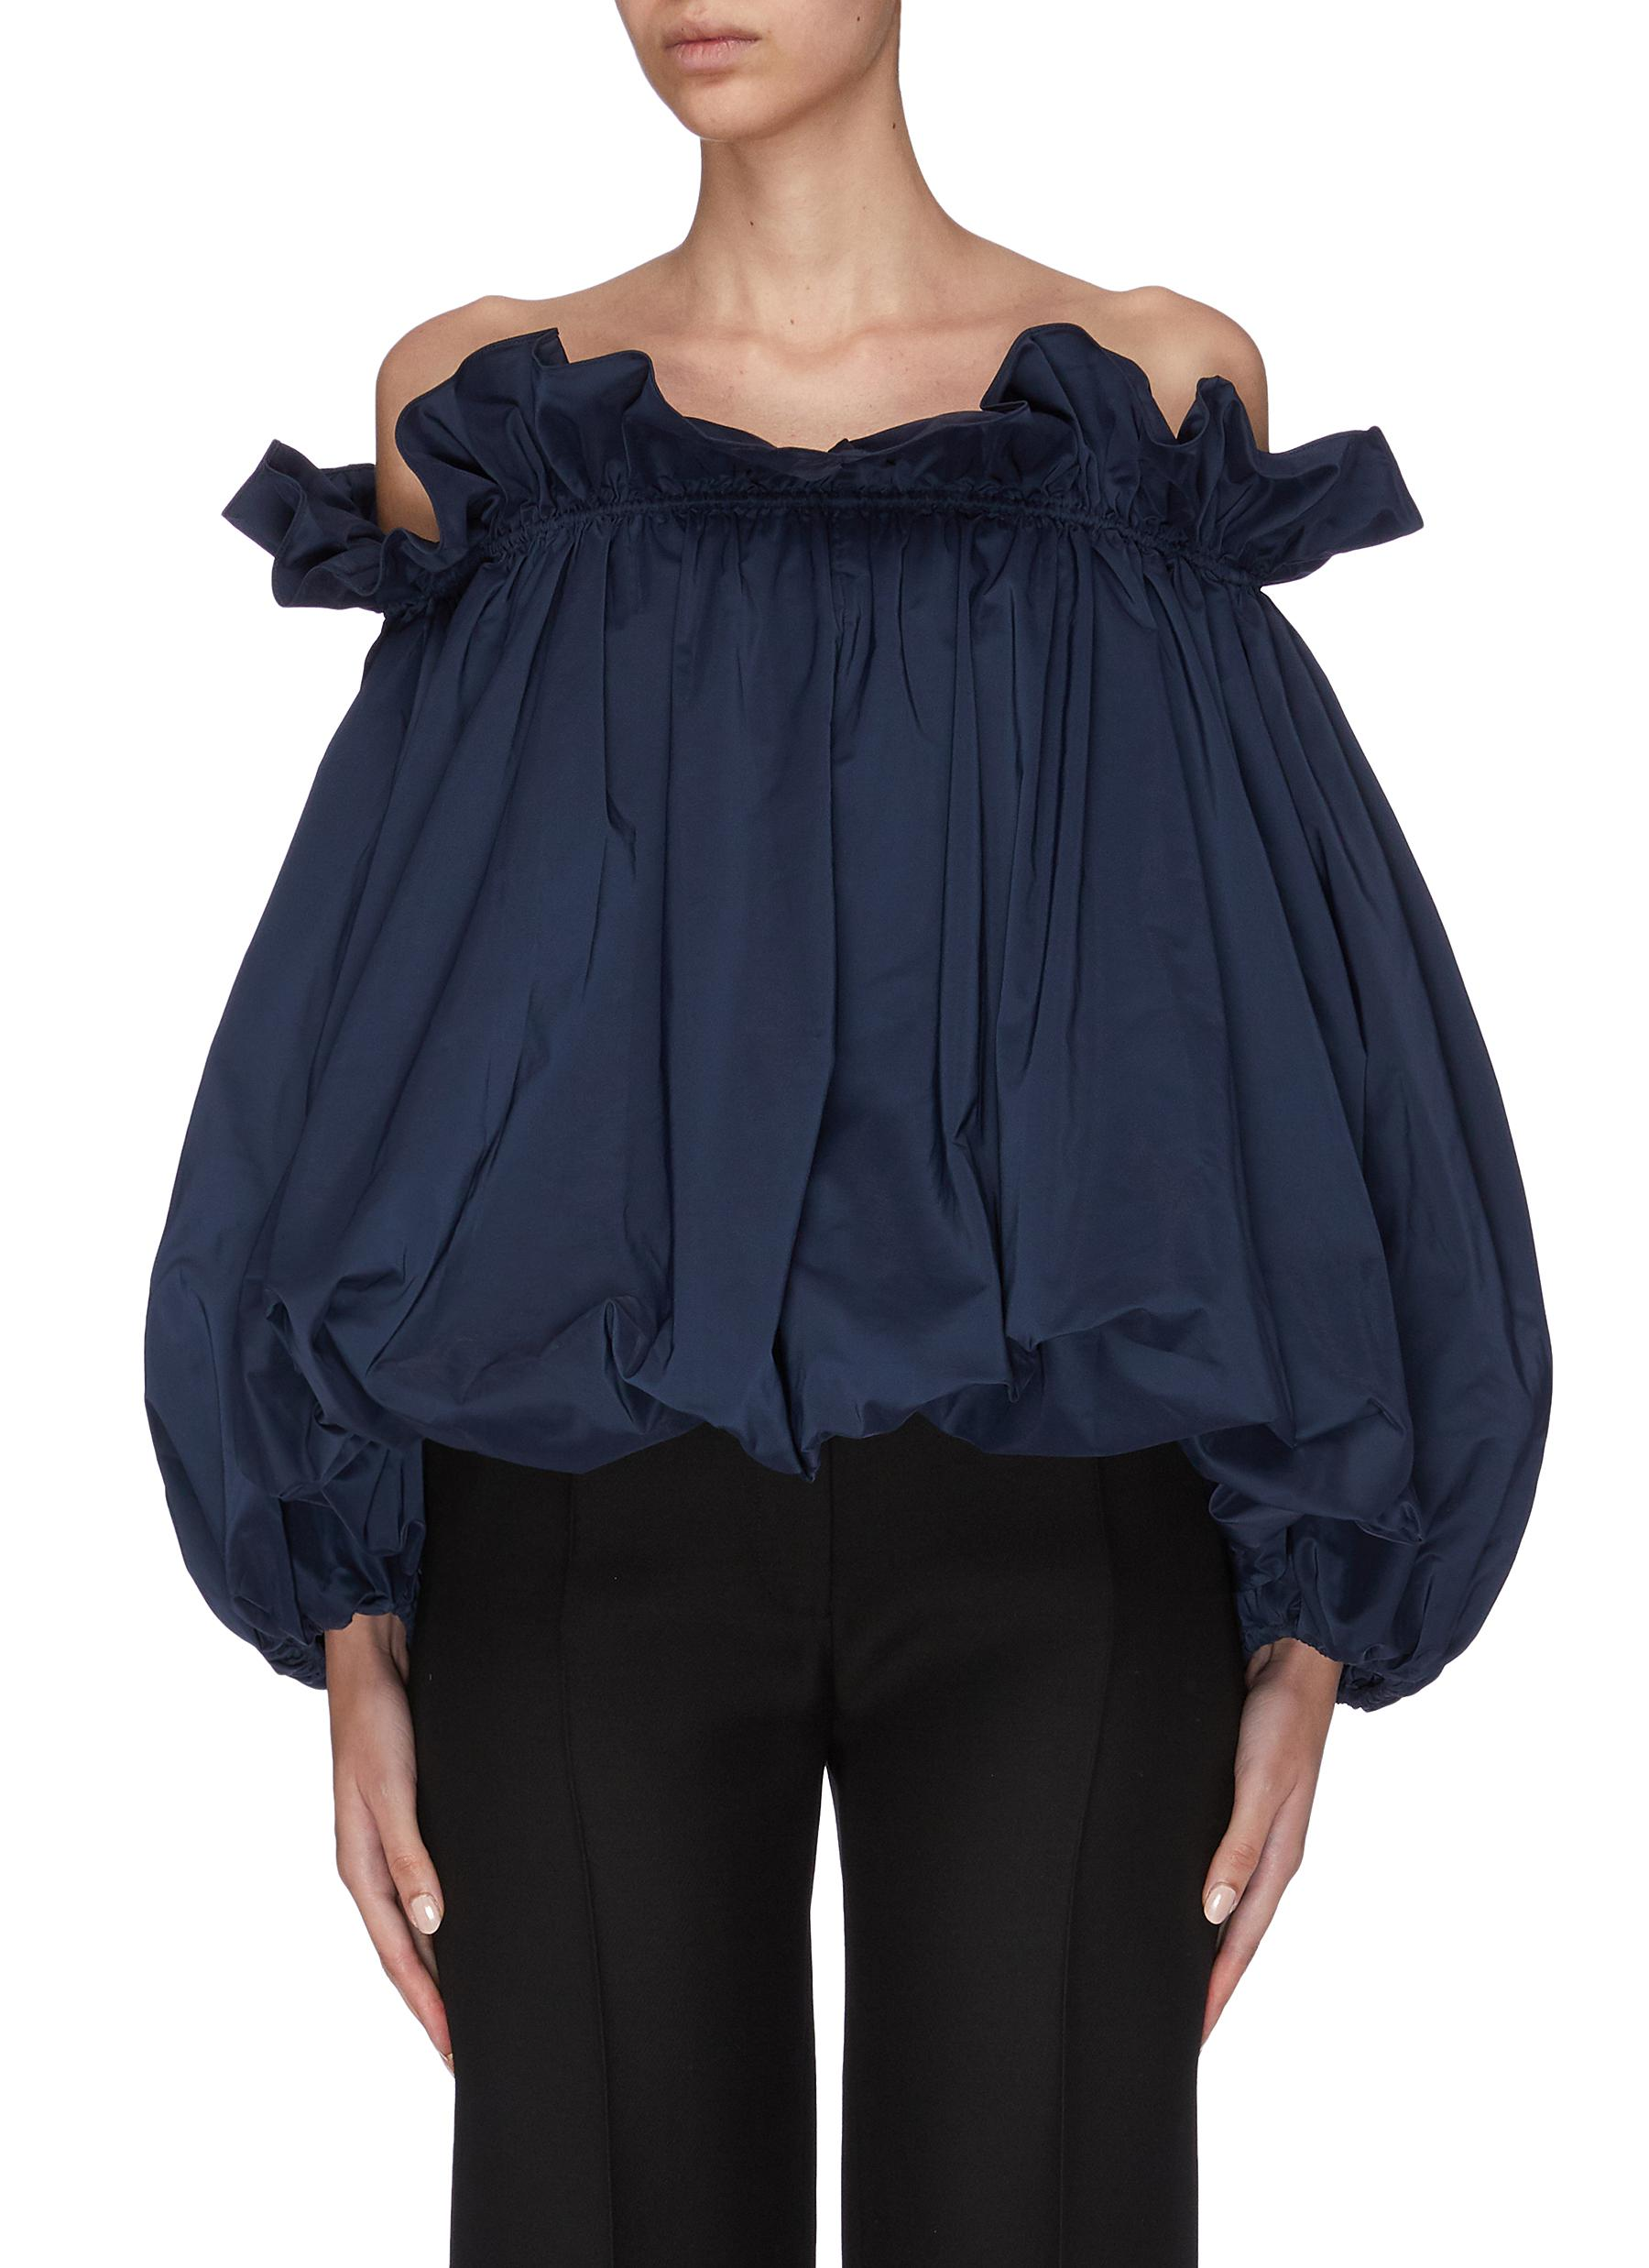 Bubble hem ruffle neck off-shoulder top by Ming Ma